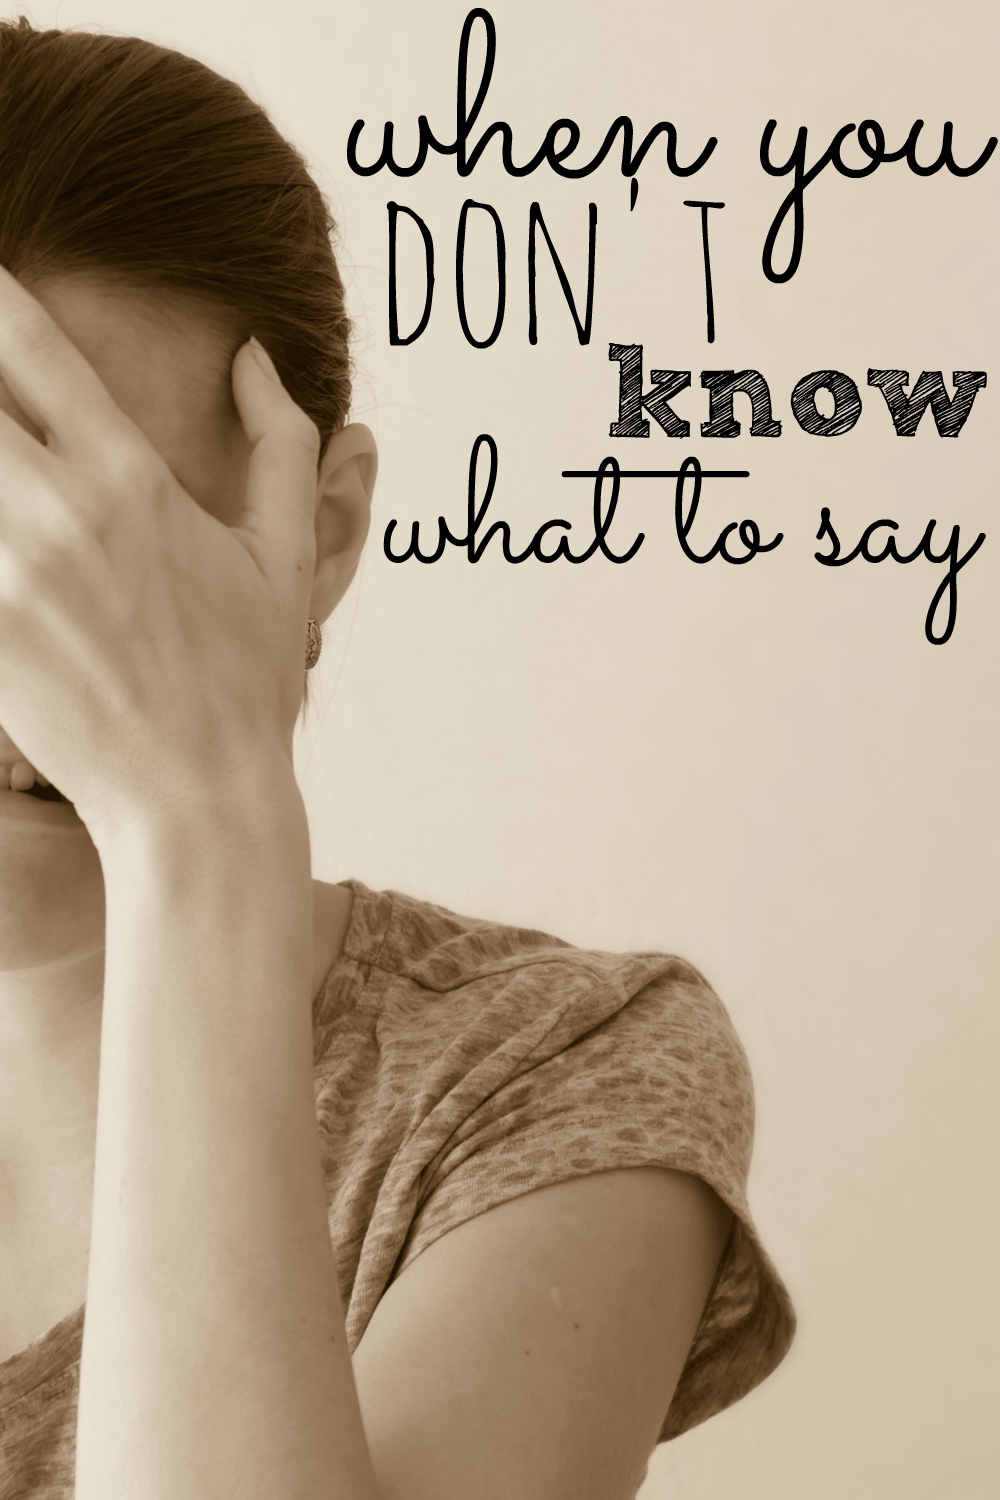 When you don't know what to say, sometimes the best thing is to think...